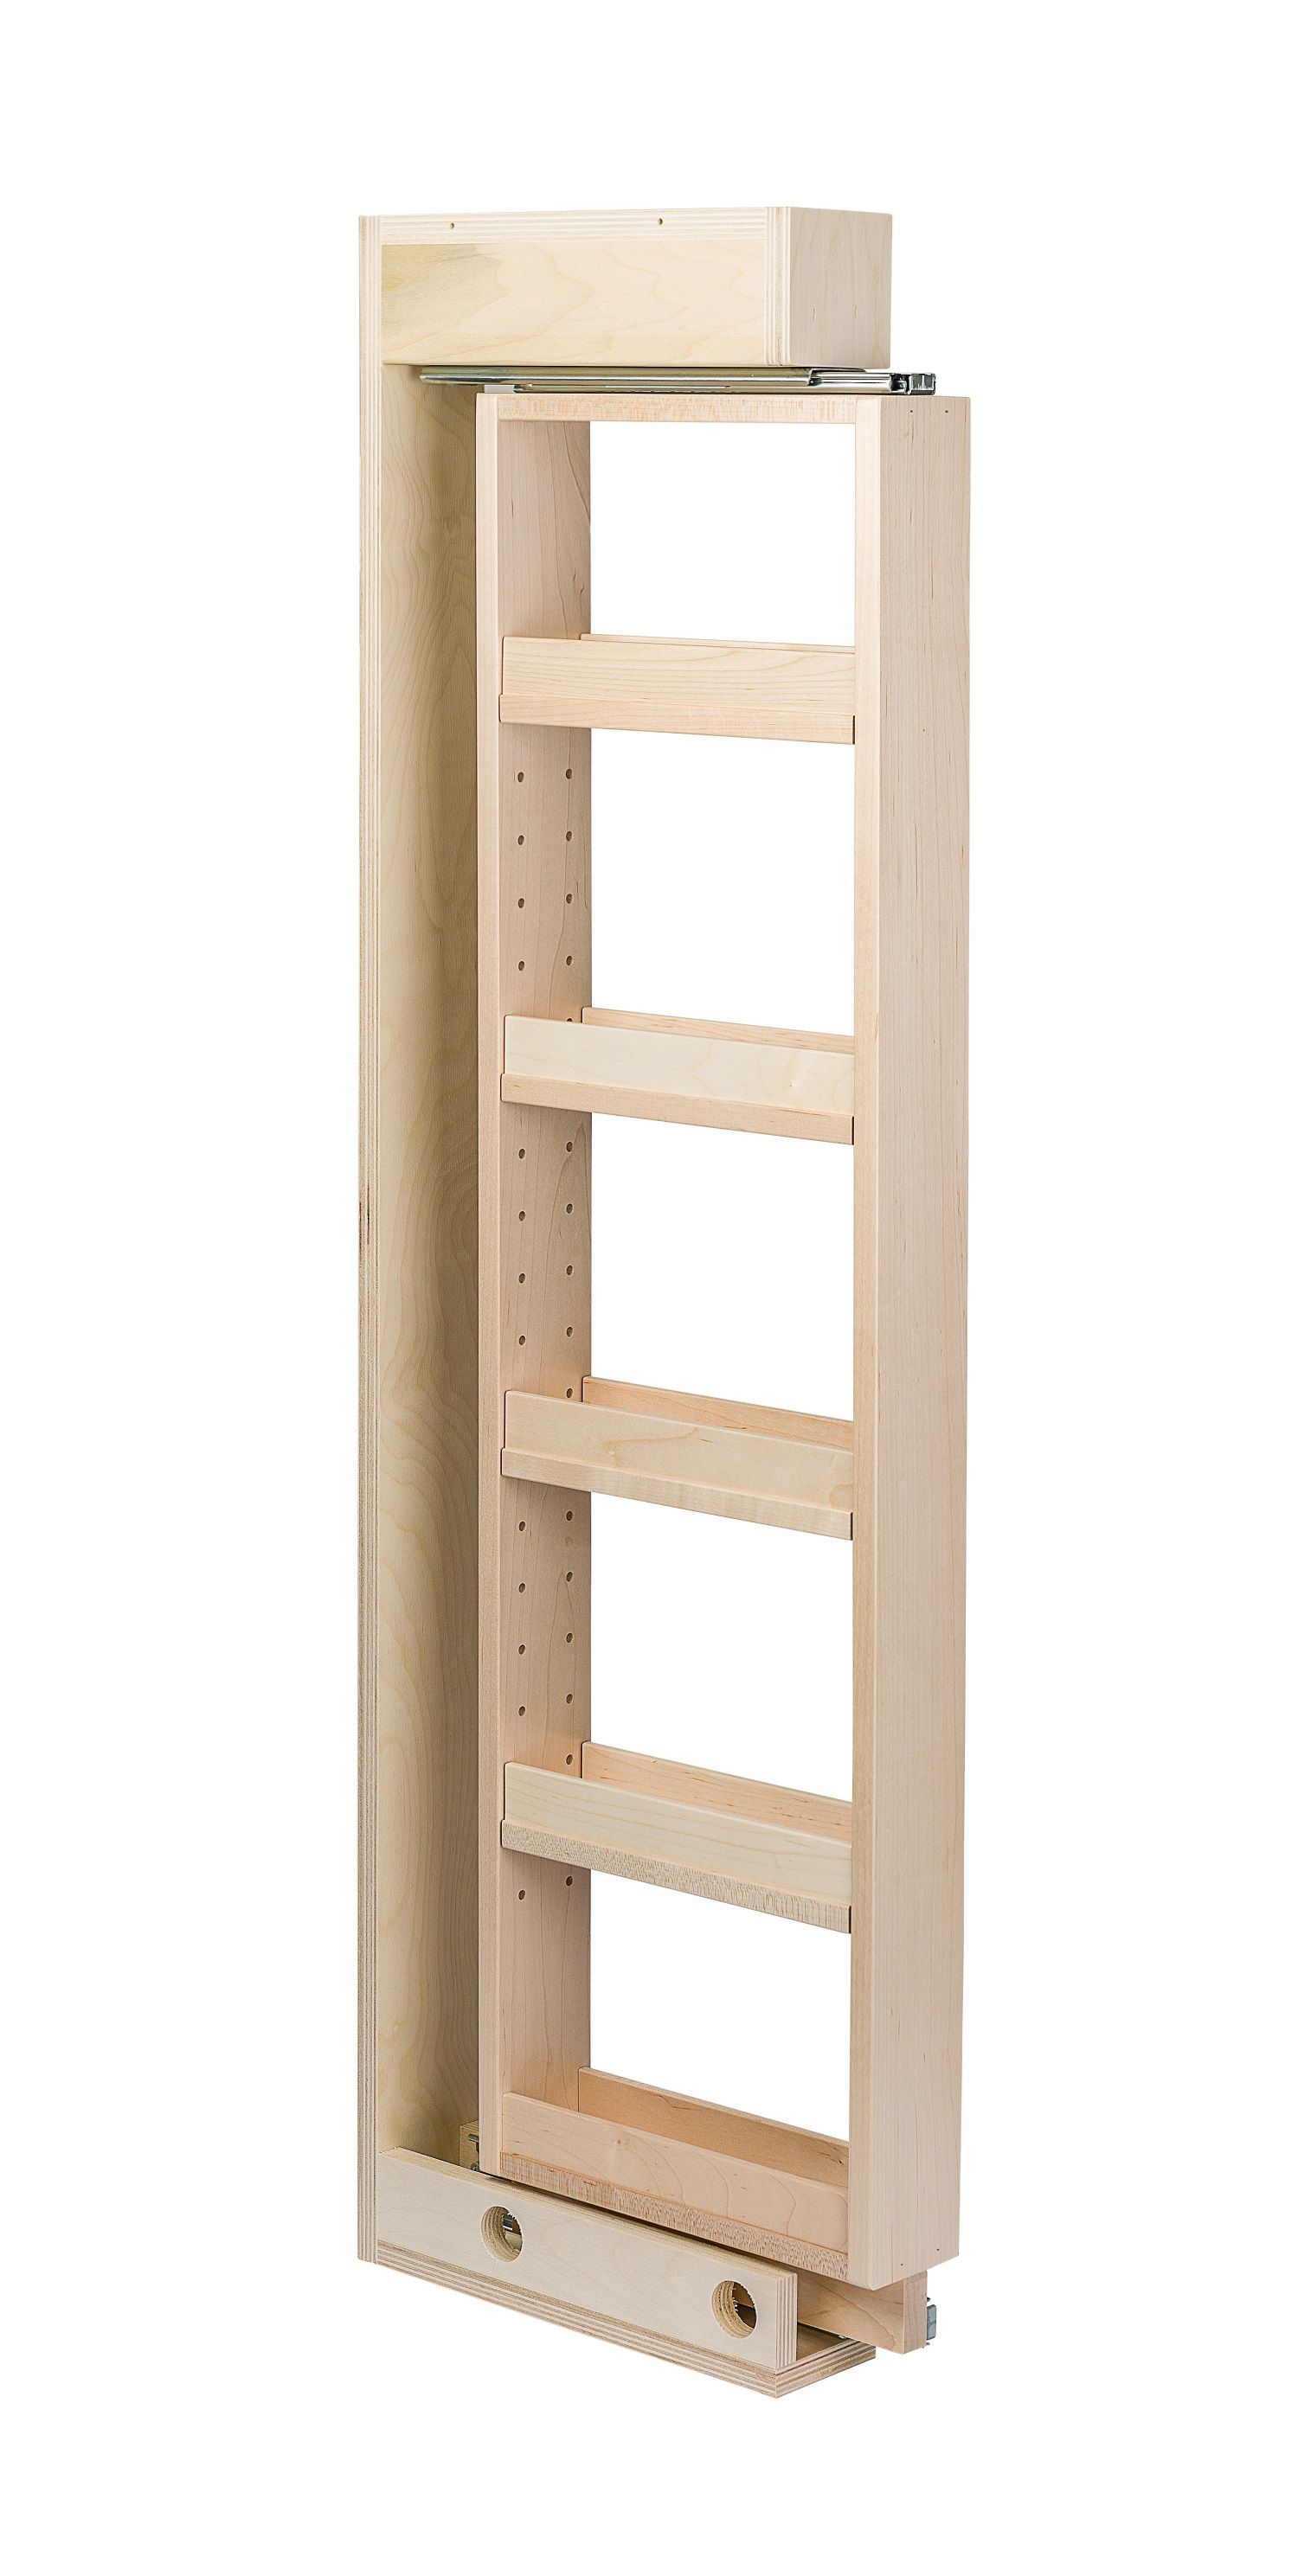 Century Components Wcf642pf Pull Out Wood Wall Kitchen Cabinet Filler 6 X 42 Walmart Com Wall Cabinet Wood Wall Cabinet